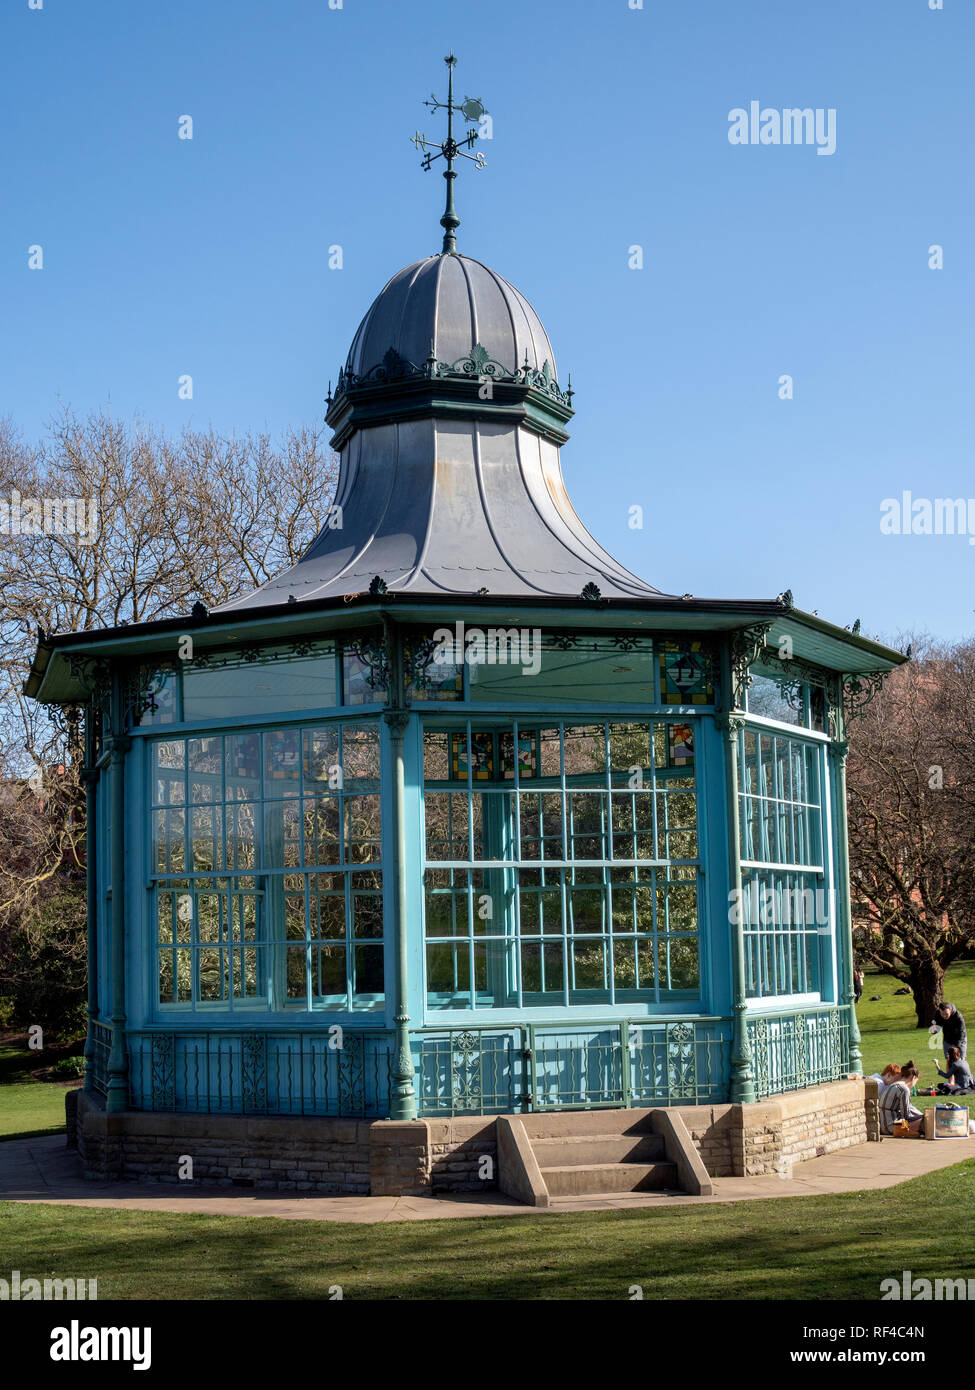 Bandstand in Weston Park, Sheffield, South Yorkshire, England, UK. - Stock Image